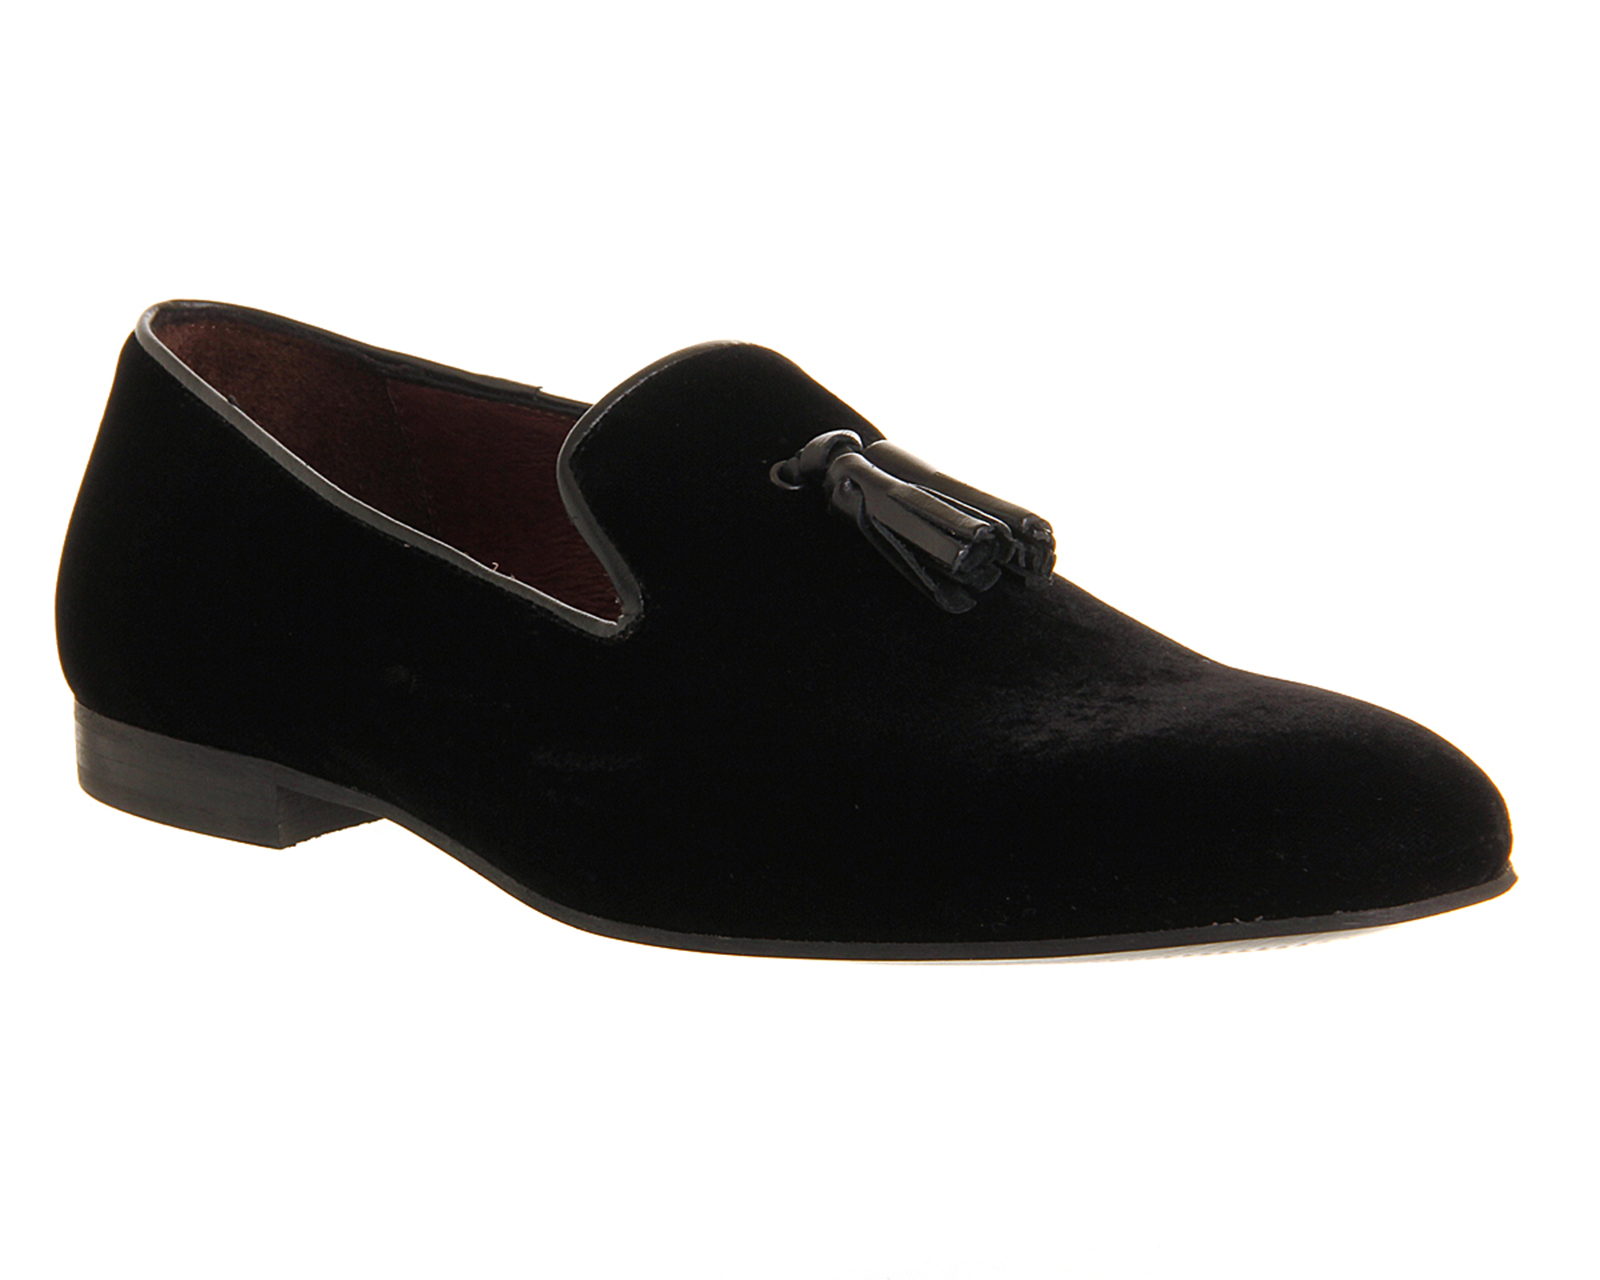 mens poste aristocrat loafers black velvet formal shoes ebay